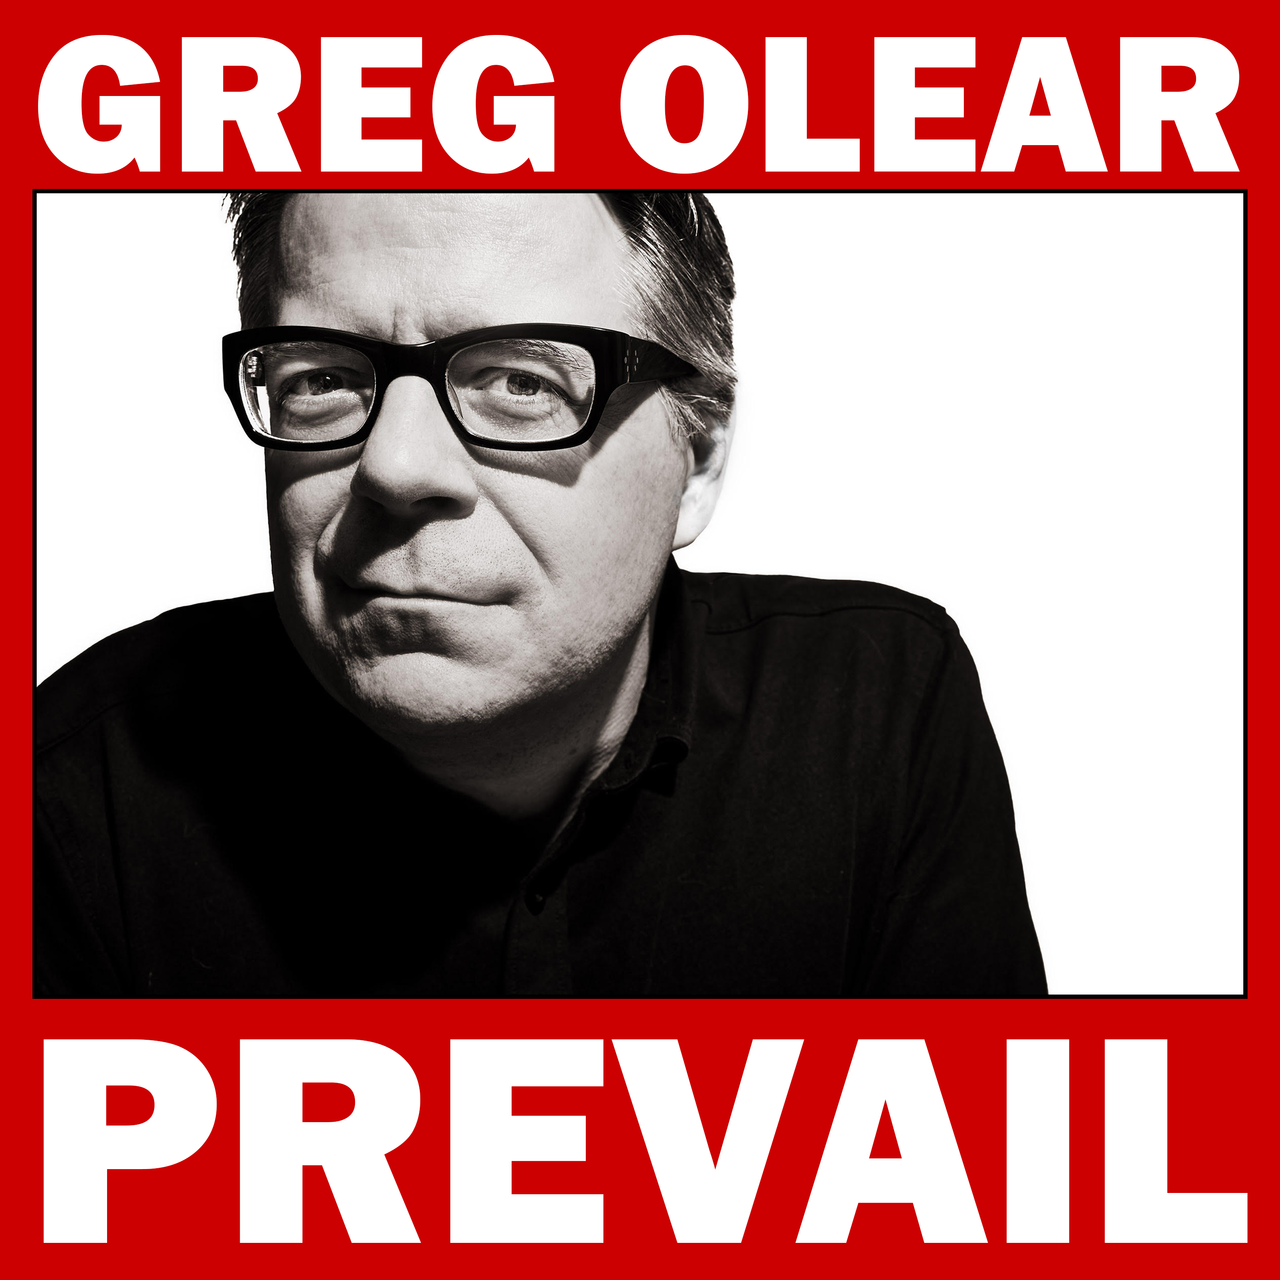 PREVAIL by Greg Olear